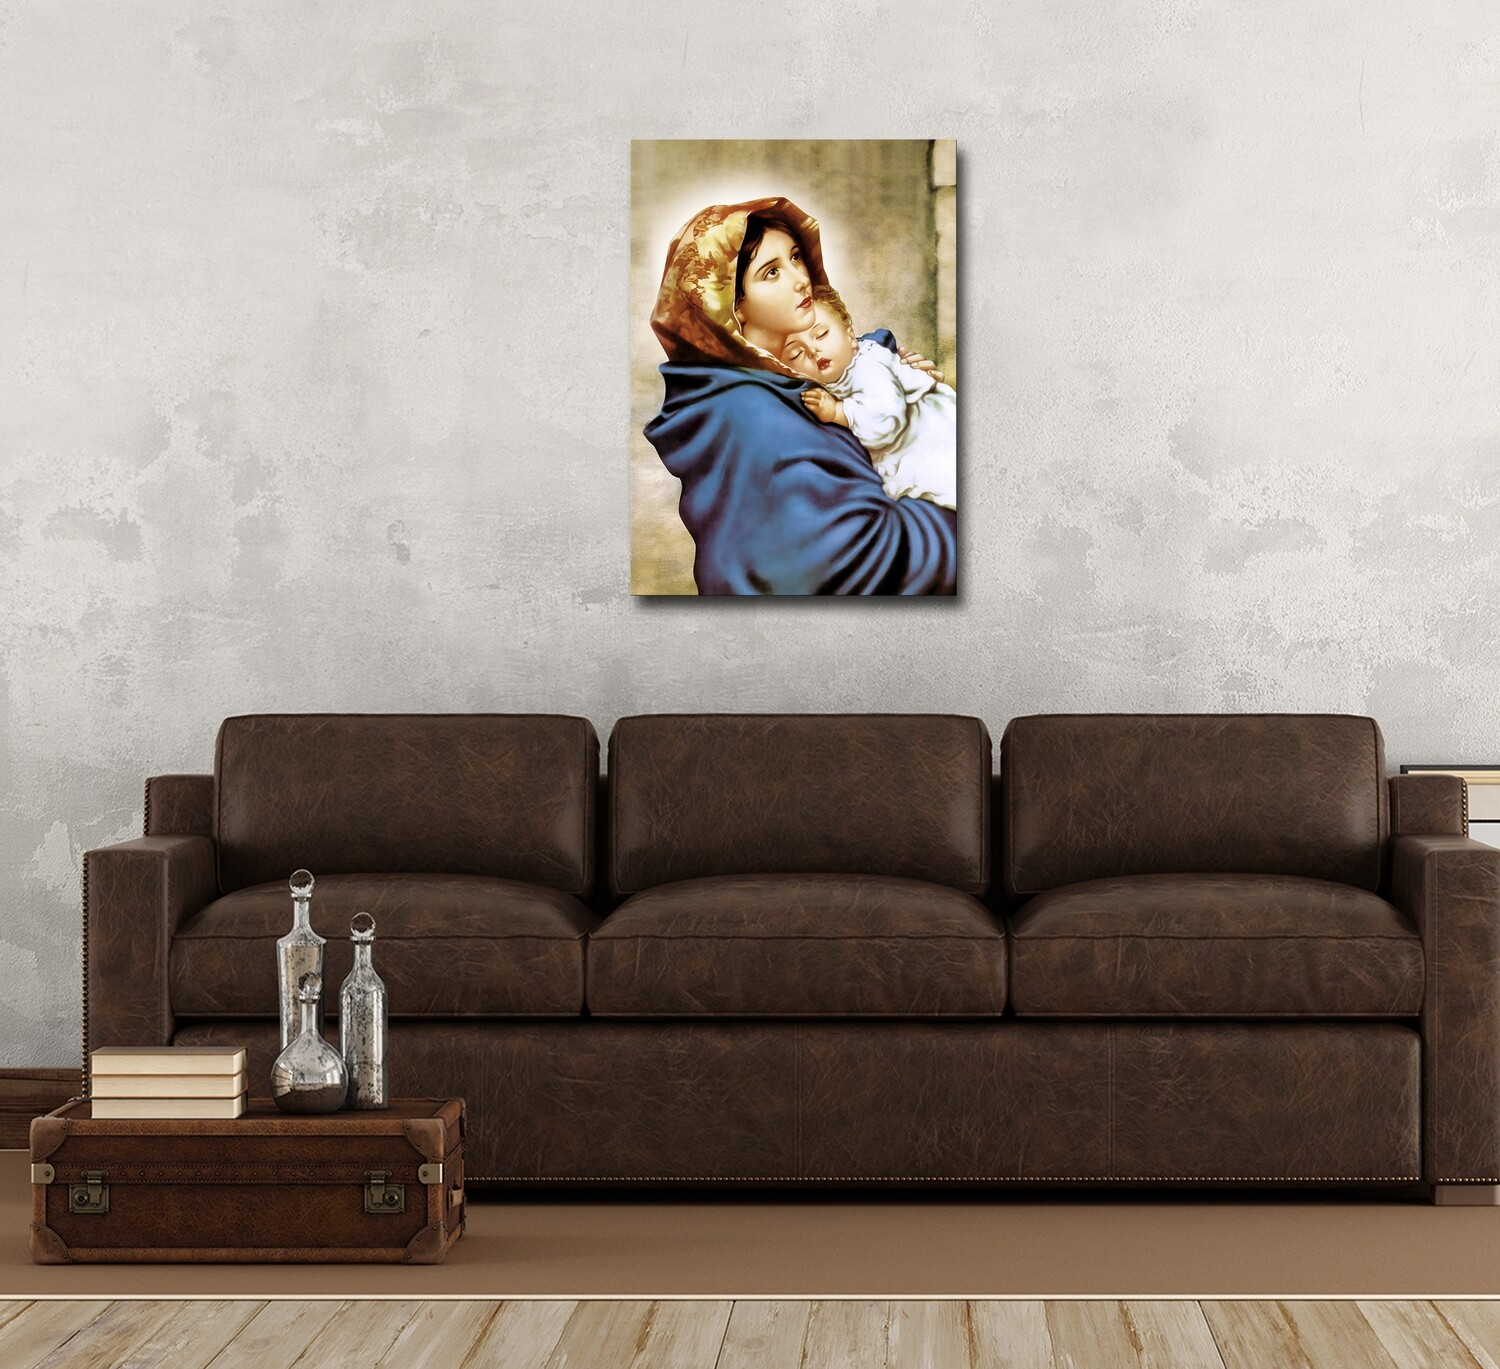 Virgin Mary and Baby Jesus Painting - Modern Frameless Christian Wallart -Mother Mary and Child Jesus Picture Printed on Acrylic Glass |Aluminium Float Frame and Ready To Hang